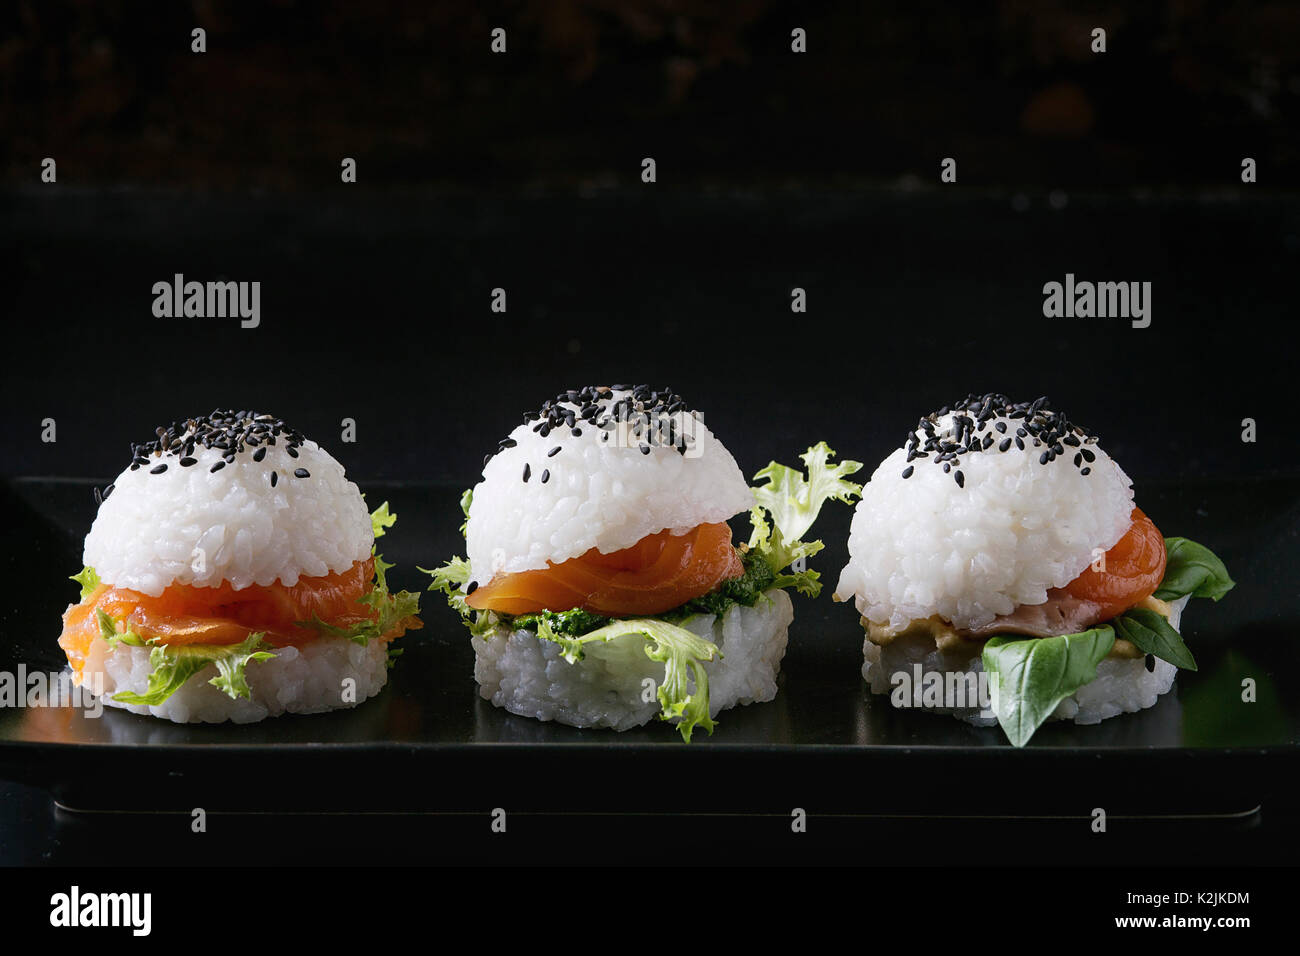 Mini rice sushi burgers with smoked salmon, green salad and sauces, black sesame served on black square plate with textile napkin over black backgroun - Stock Image